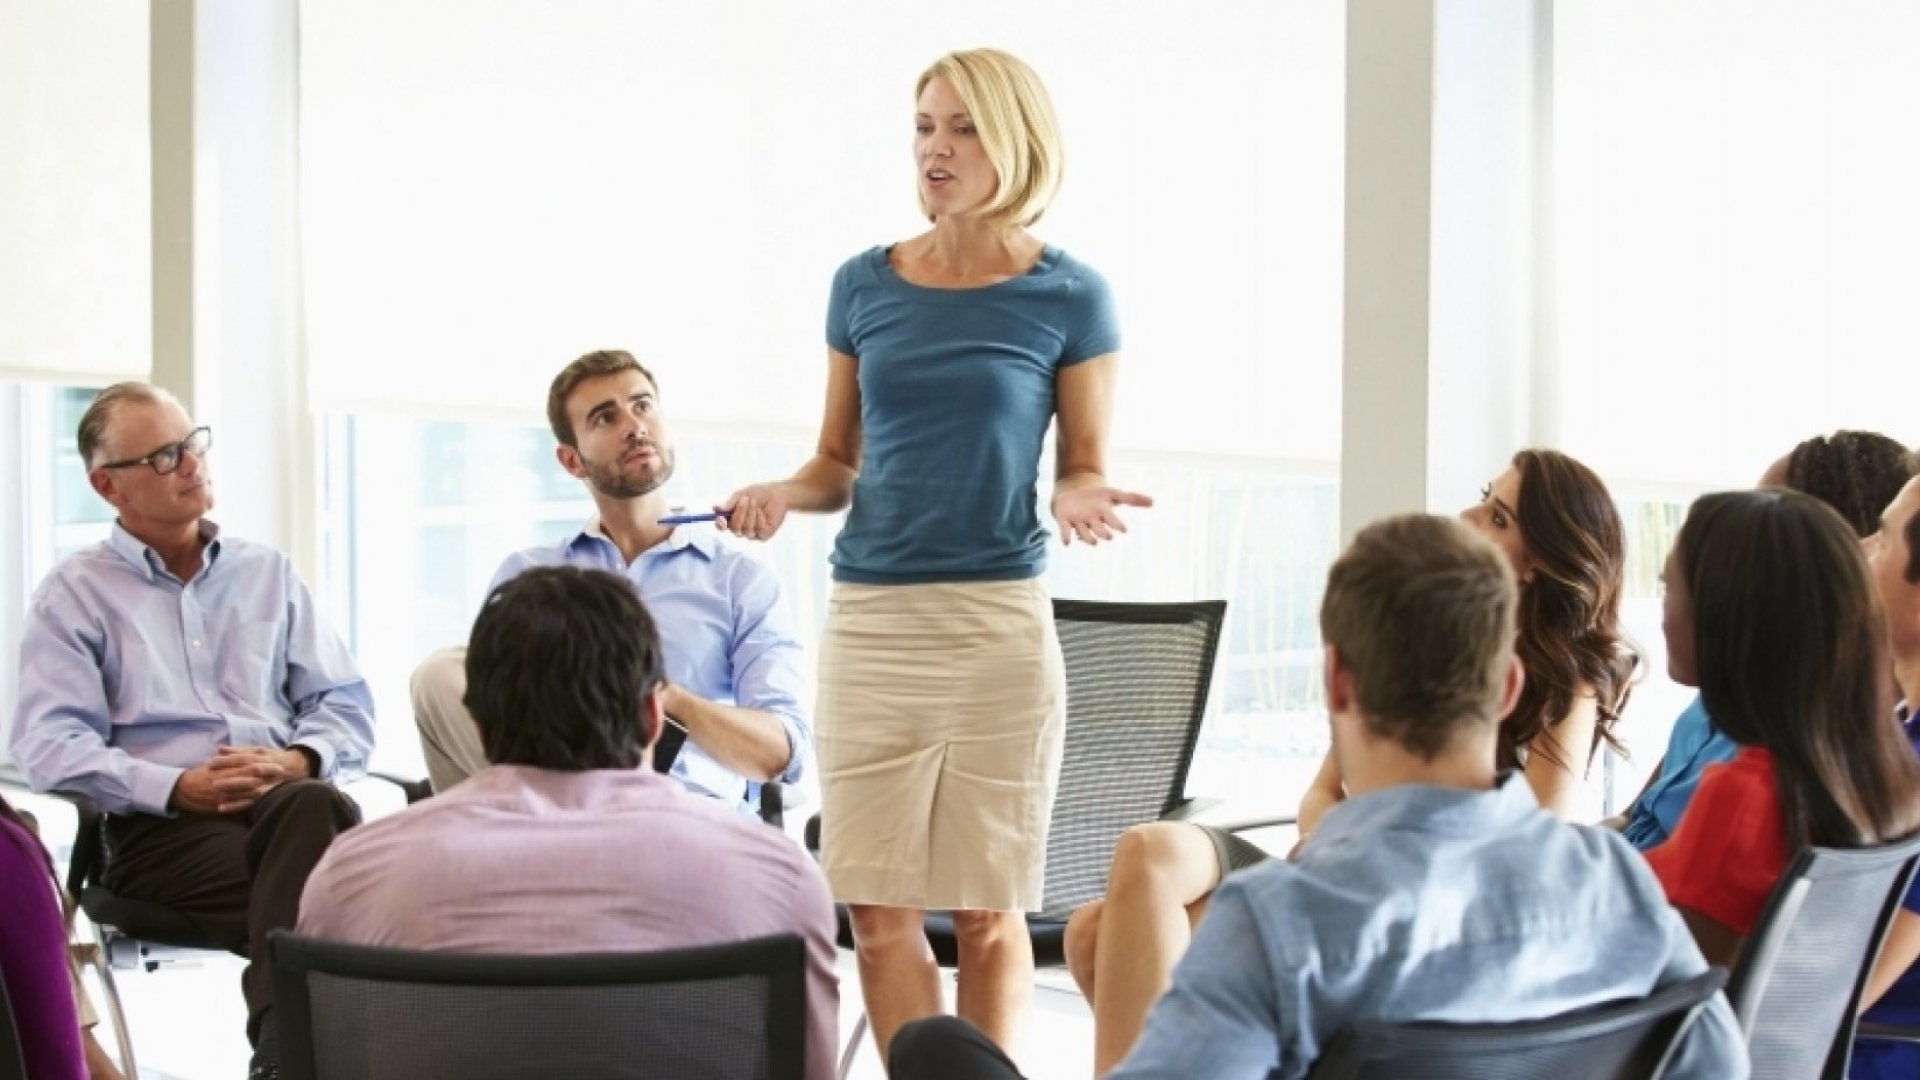 How a Personal Approach Can Get the Best Out of Your Employees